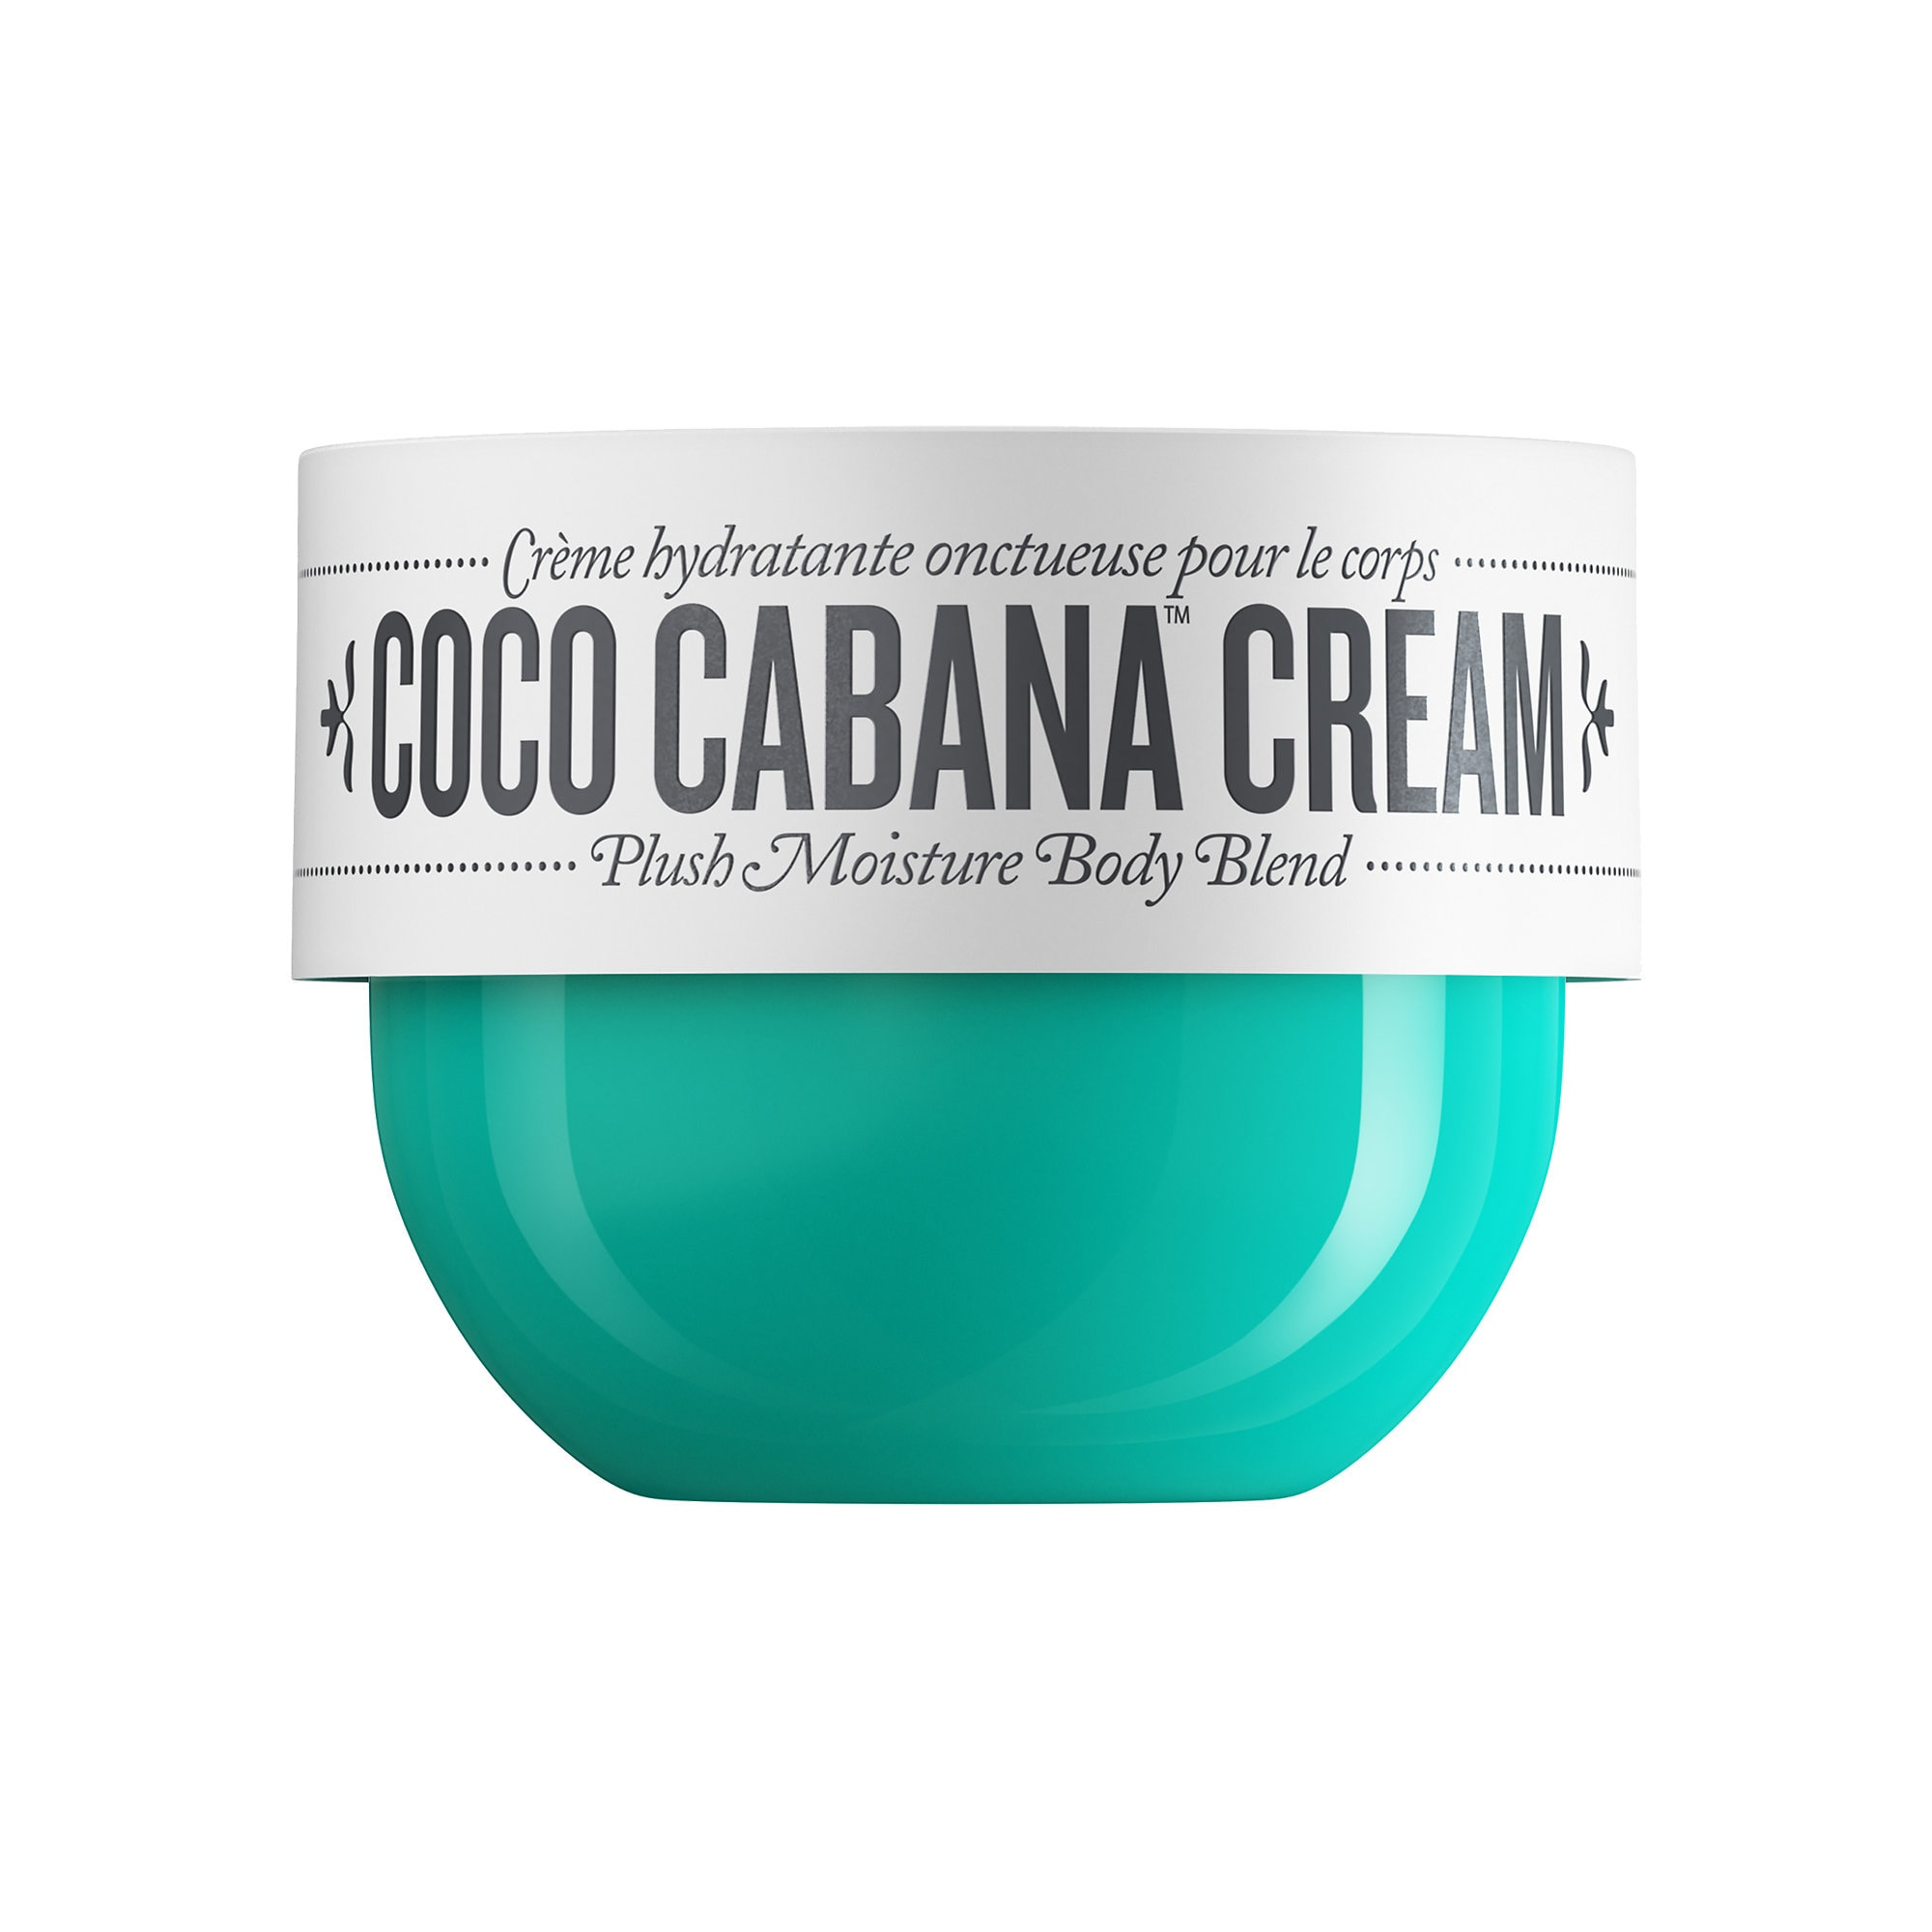 Sol De Janeiro - Coco Cabana Body Cream - With New Coconut Scent and Plush Moisture